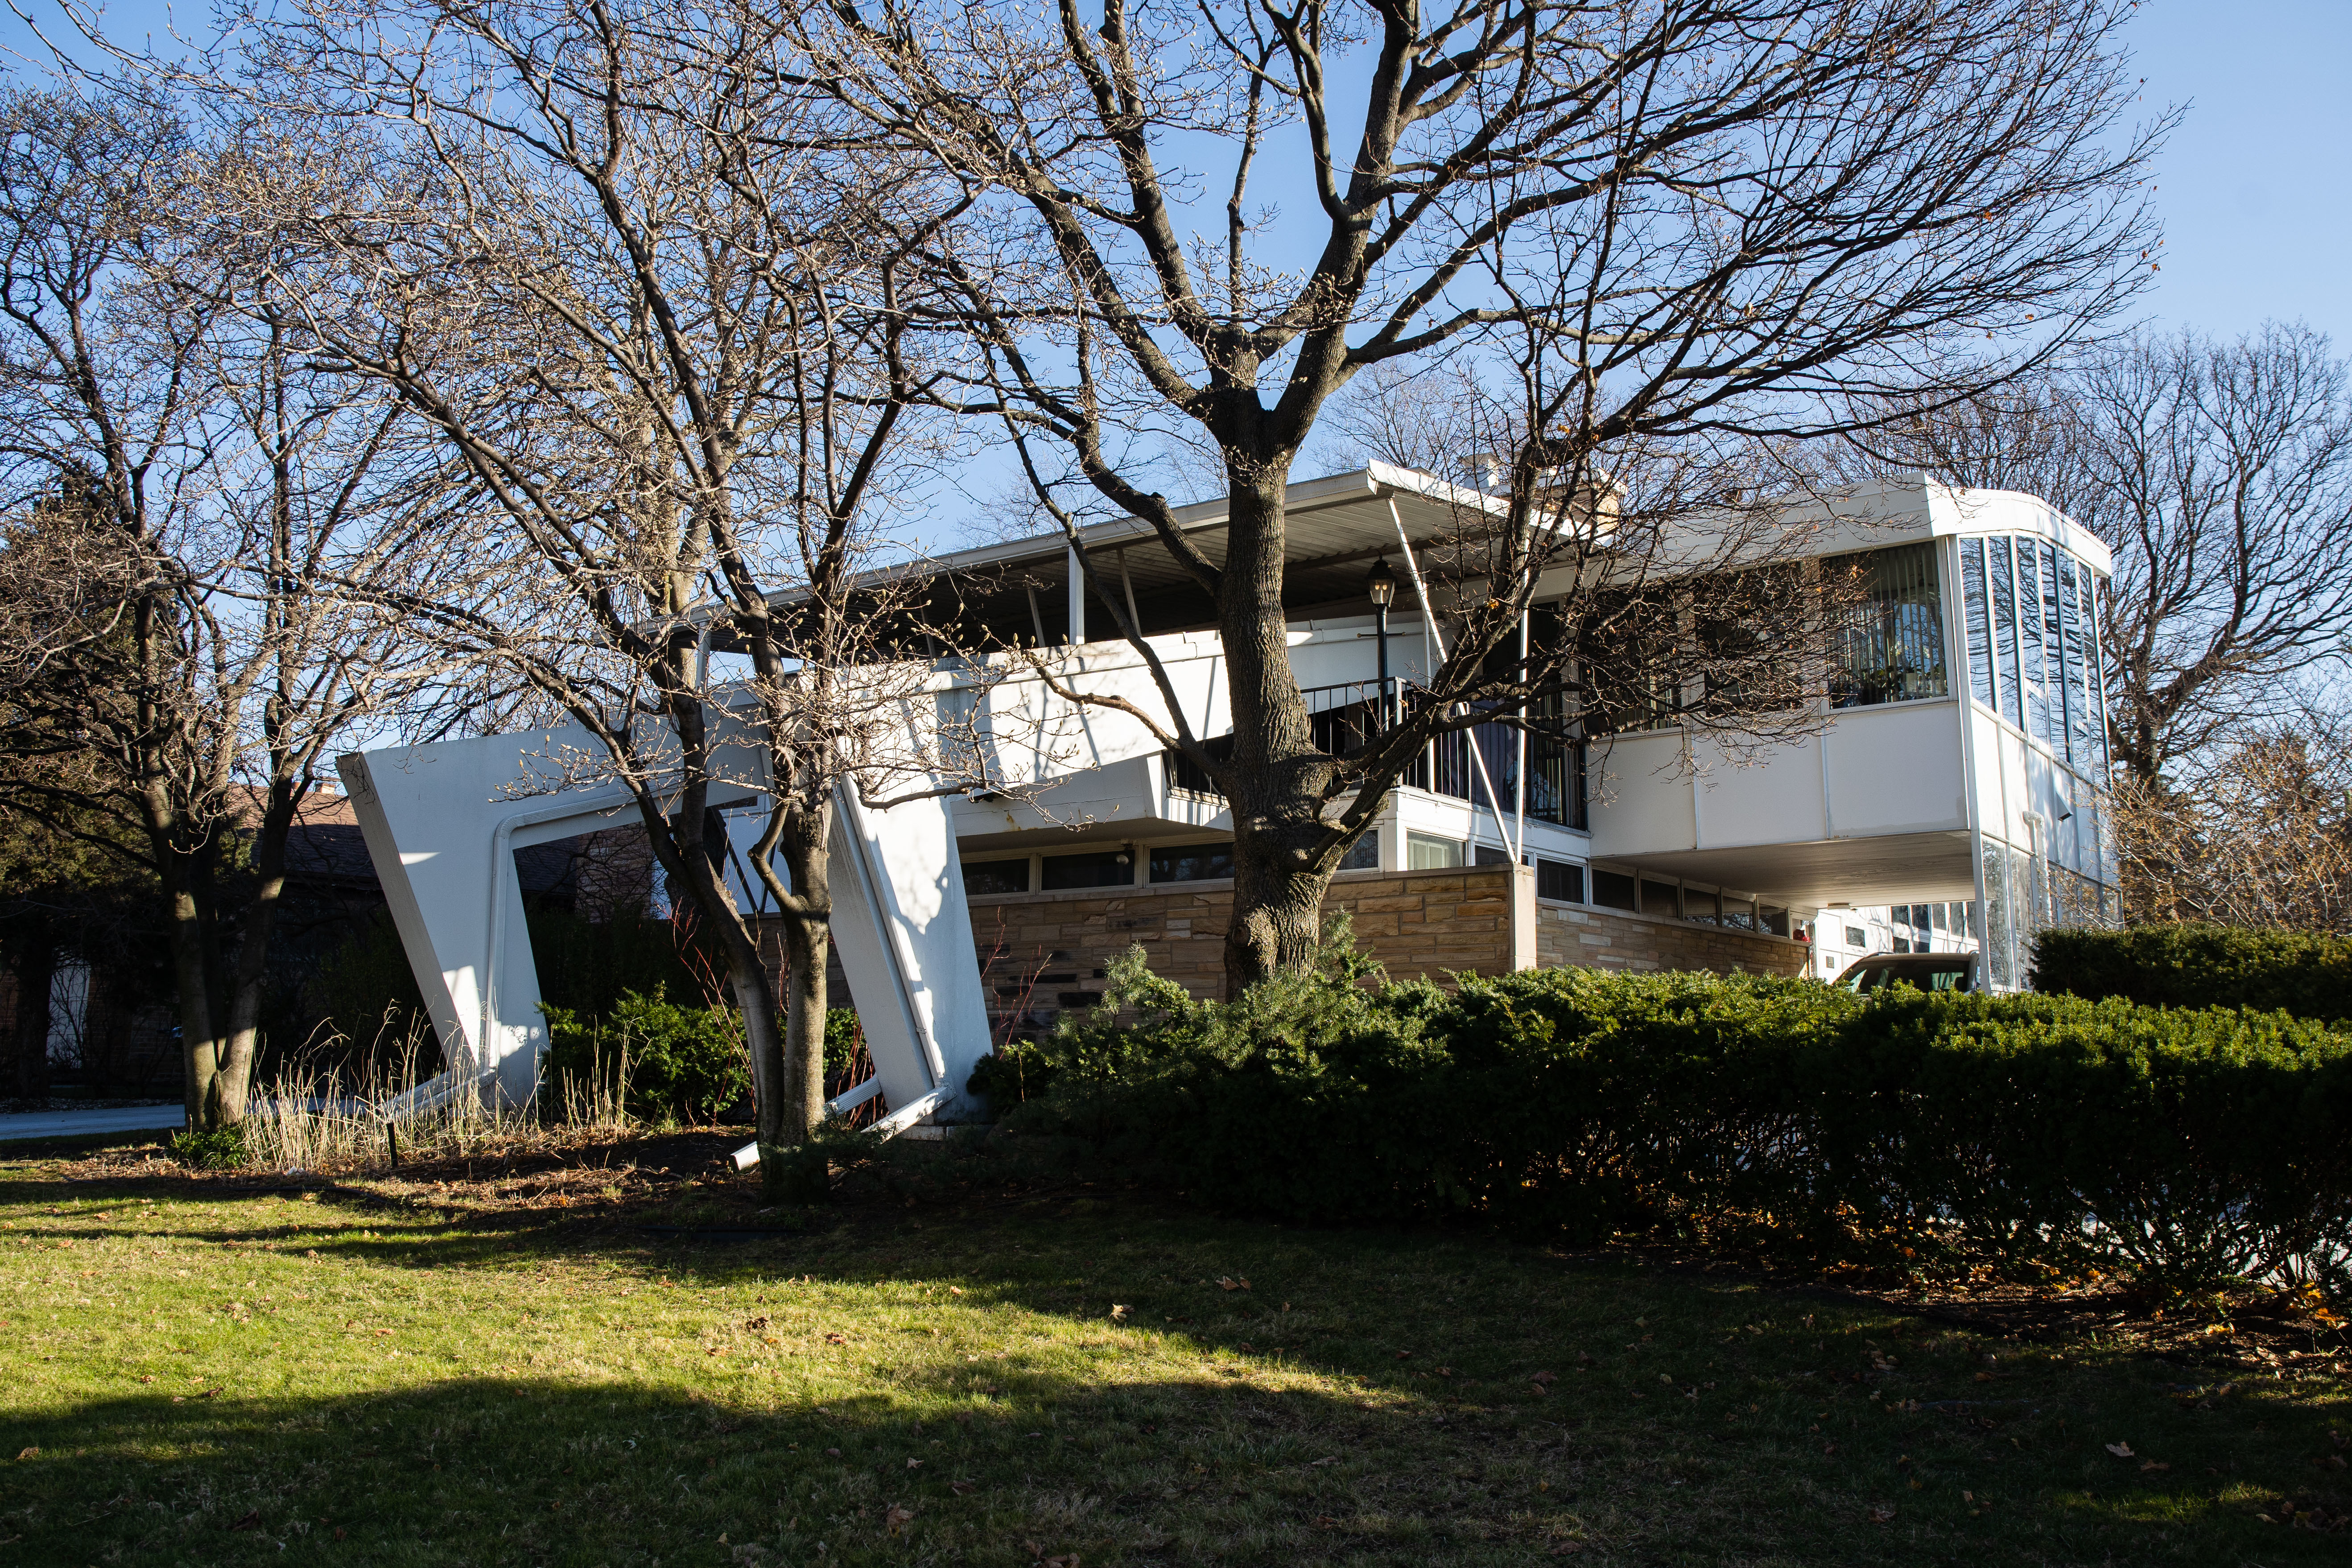 The Miracle House, located at 2001 N. Nordica Ave. in the Galewood neighborhood, is seen in this photo, Dec. 4, 2020. The Landmarks Commission of the Chicago Department of Planning and Development gave the single family, mid-century home designed by Belli & Belli a preliminary landmark status.